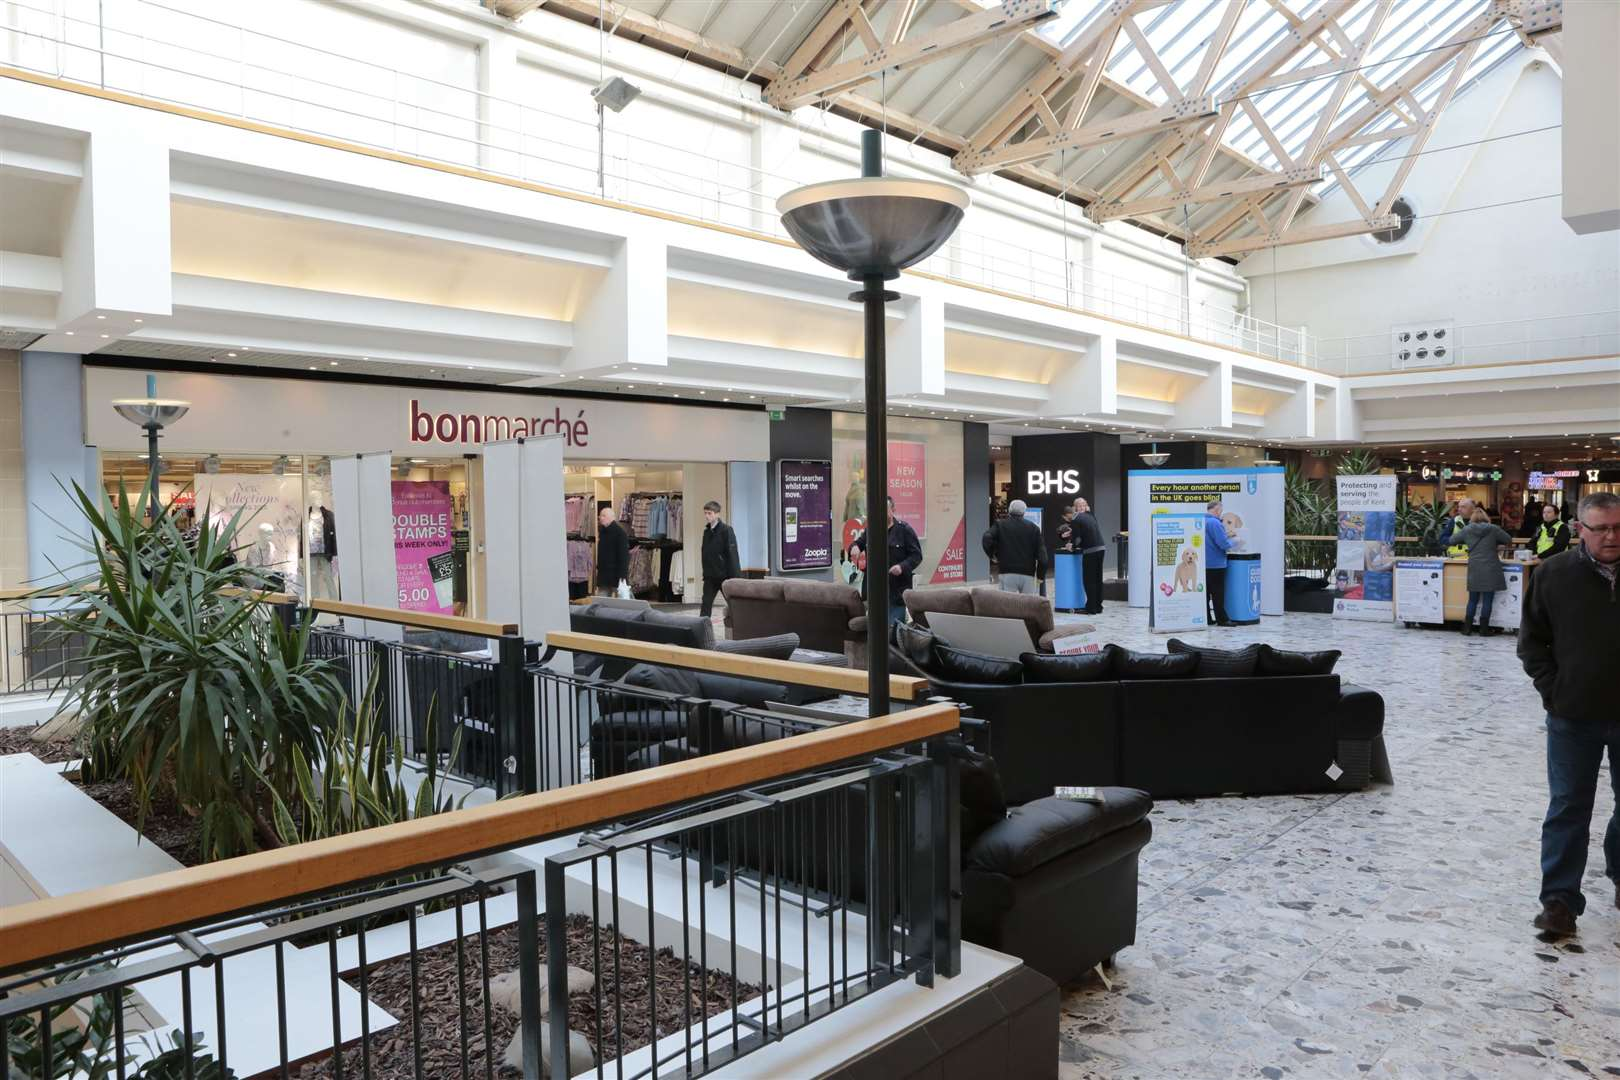 The Mall in Maidstone will host the free workshops